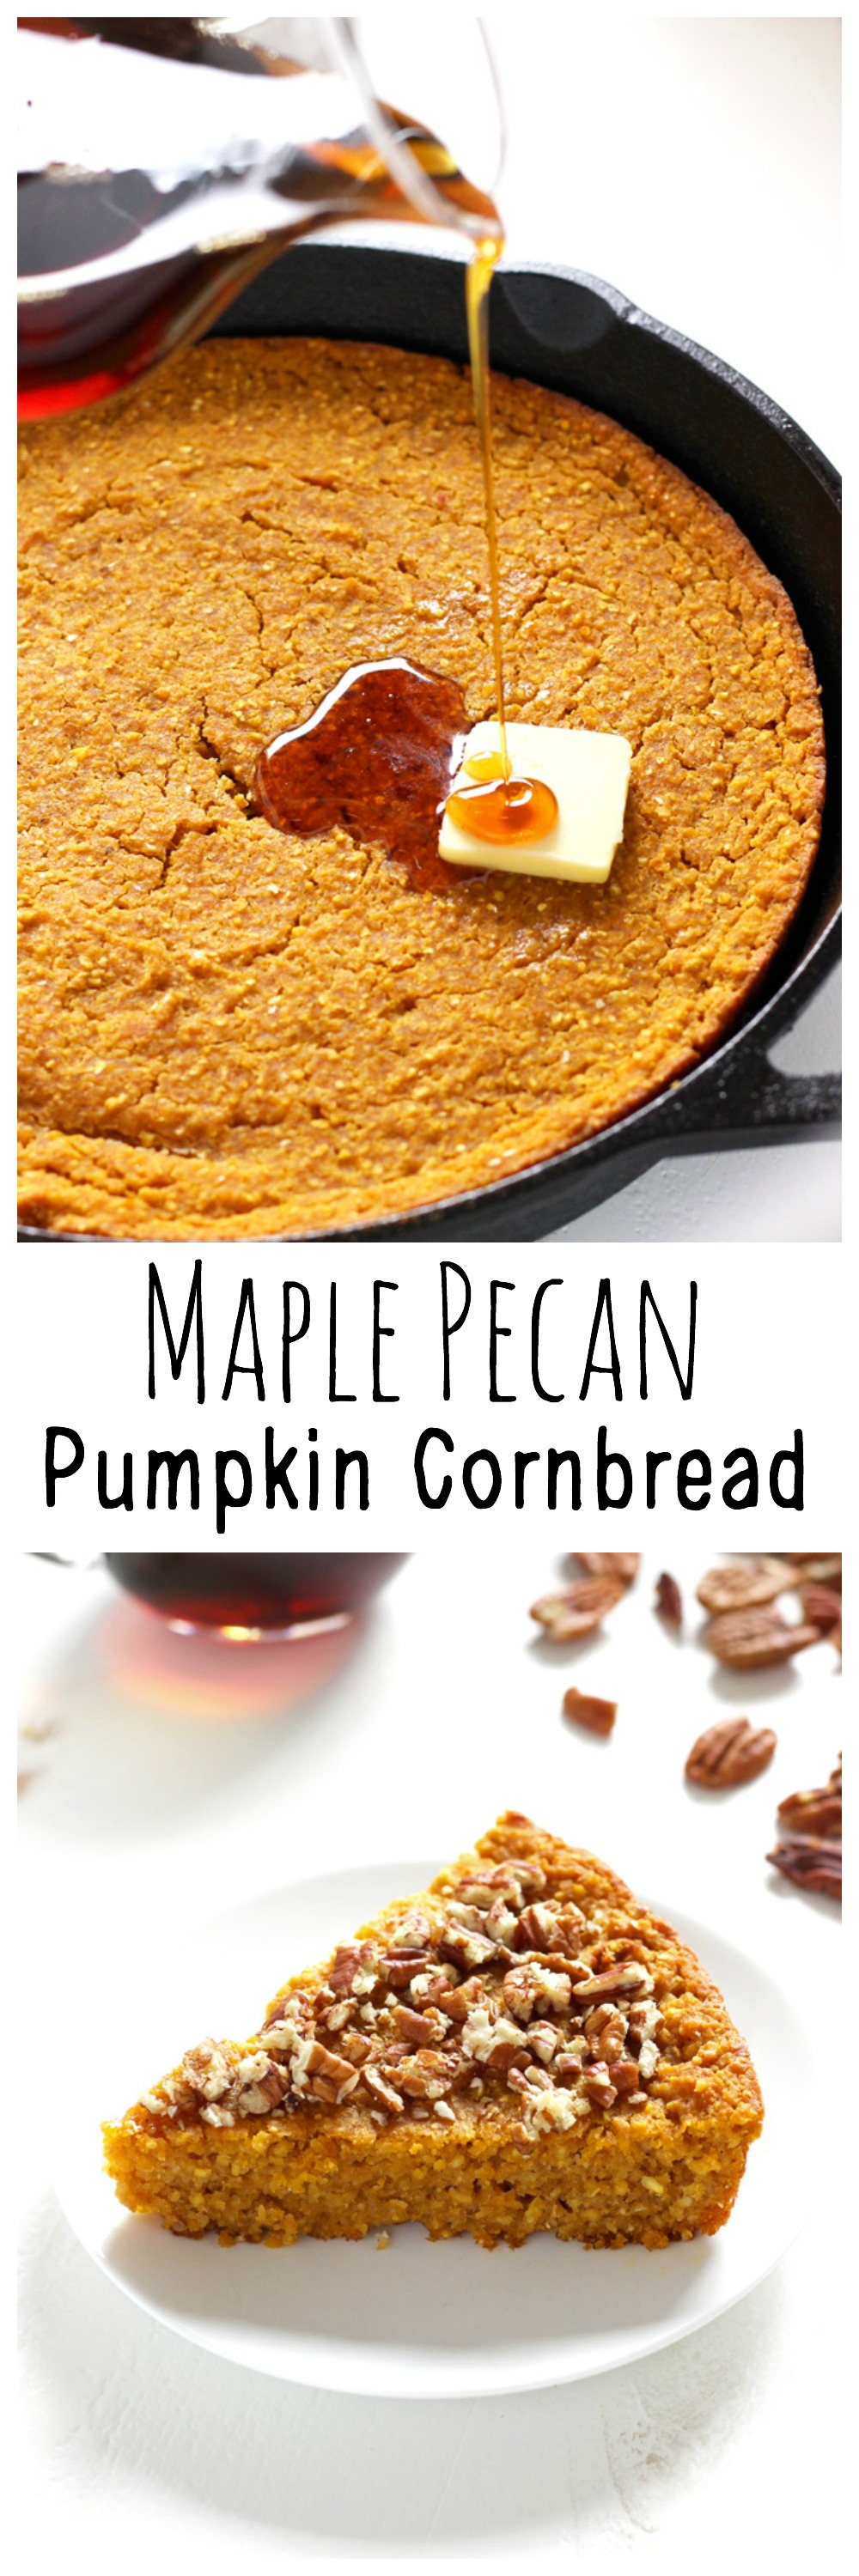 Maple Pecan Pumpkin Cornbread - Three delicious flavors all combined in an easy to bake, holiday favorite.